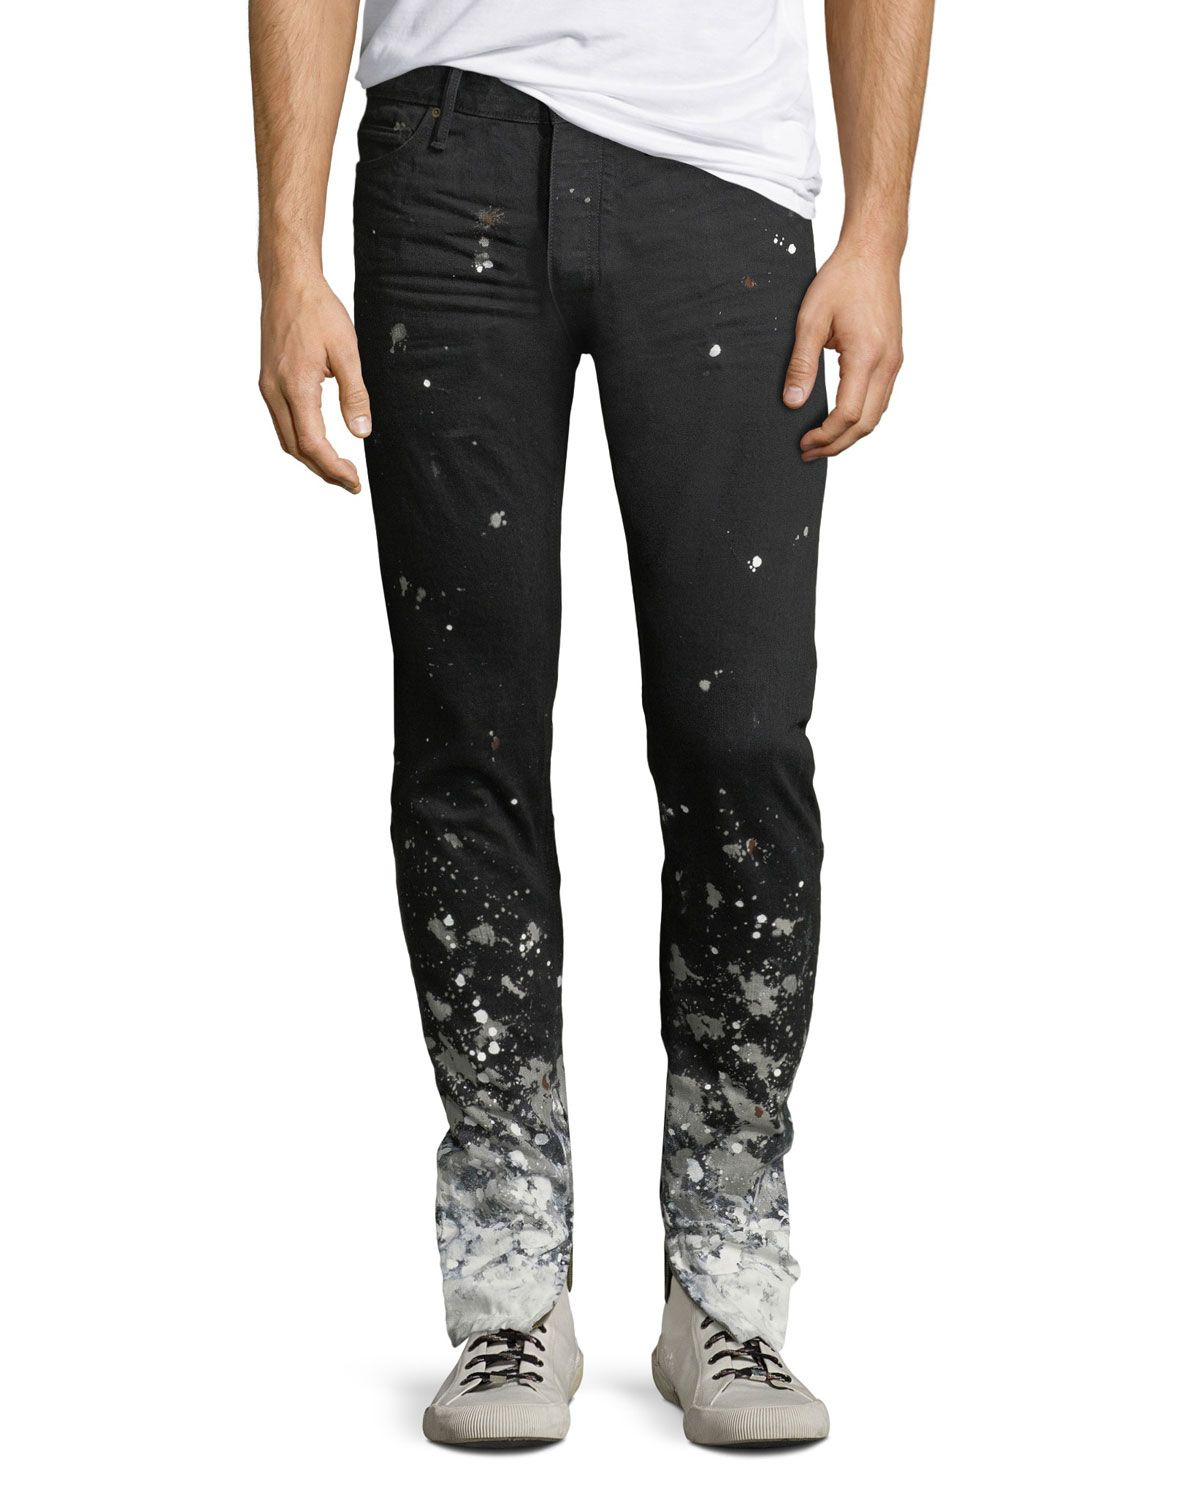 jeans with paint splatter mens at bottom